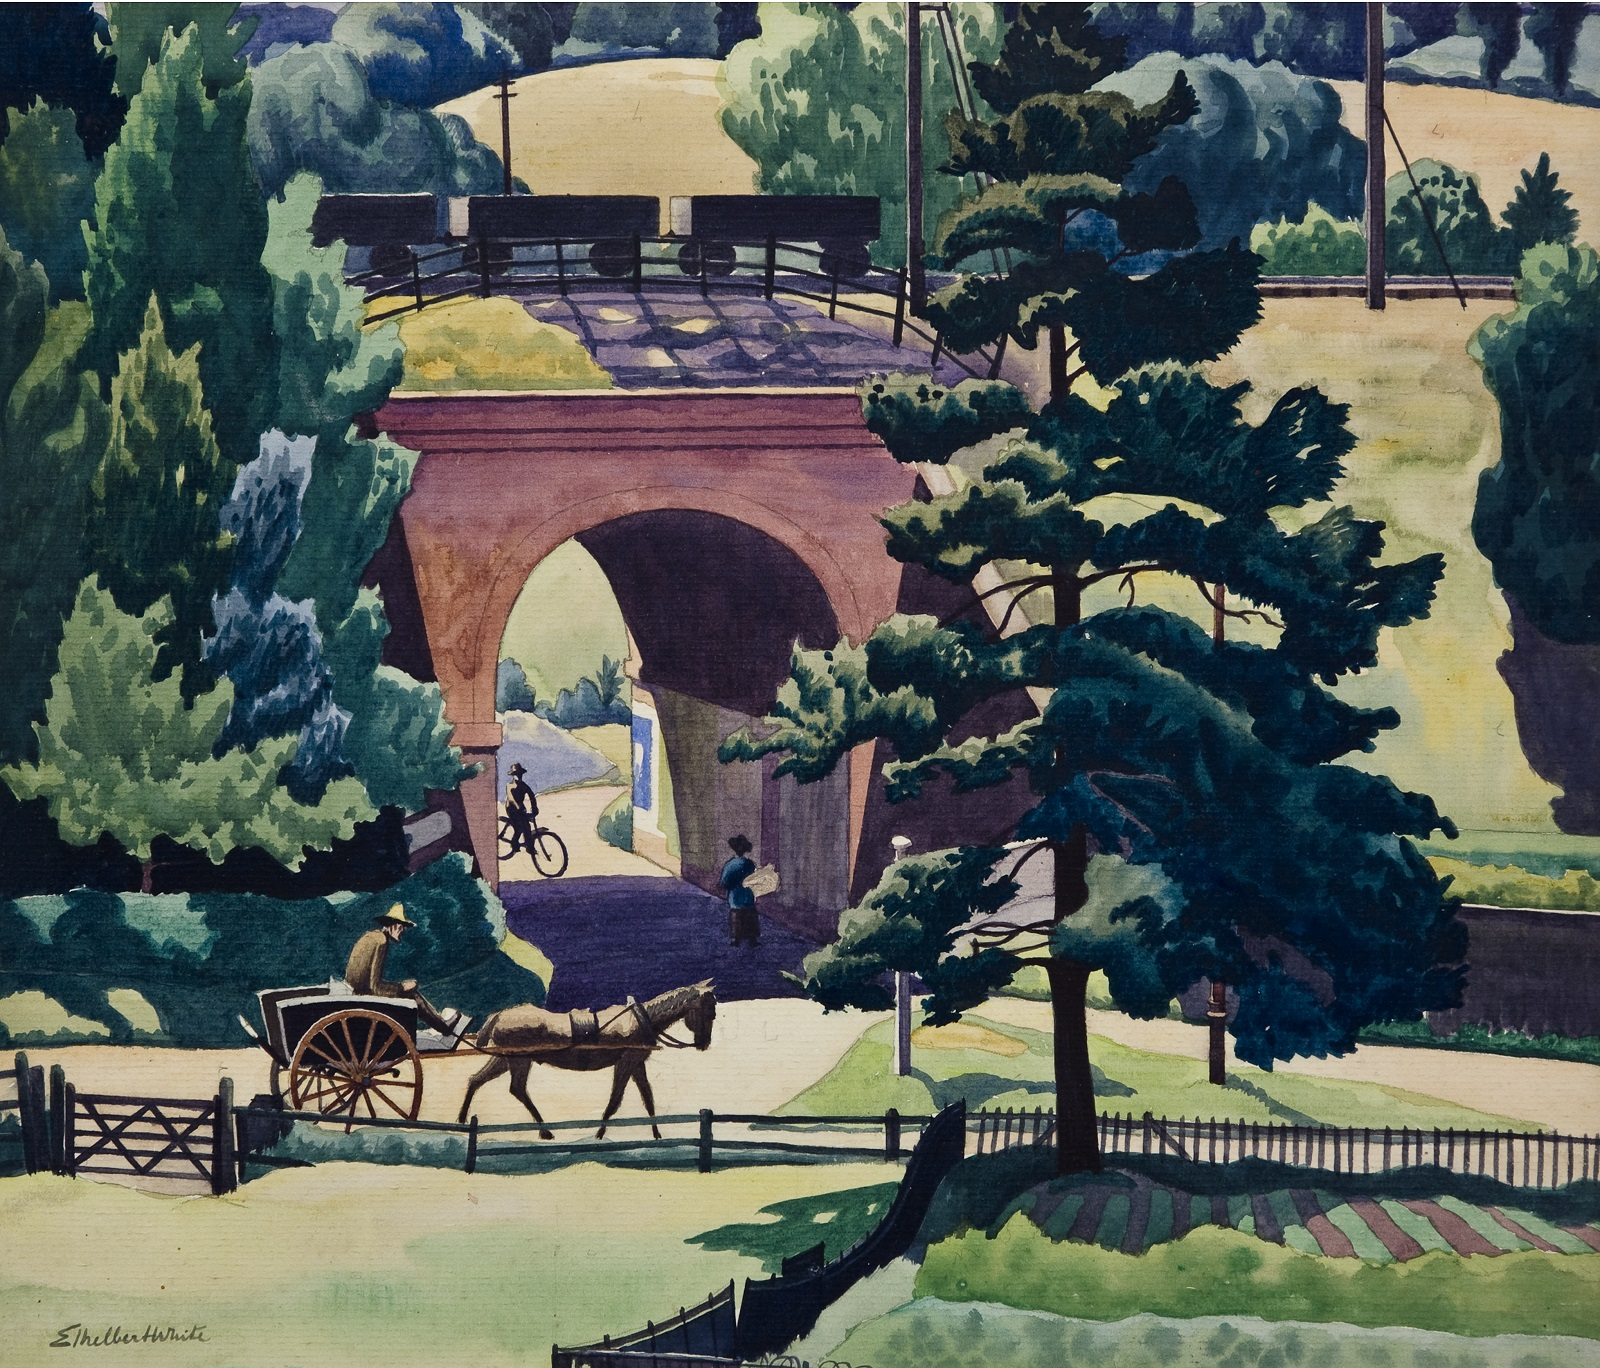 View of a railway bridge with rolling stock traveling across it. A person on a bike rides underneath the bridge towards someone else carrying a large bundle. In the foreground a horse and cart walks towards a green tree.